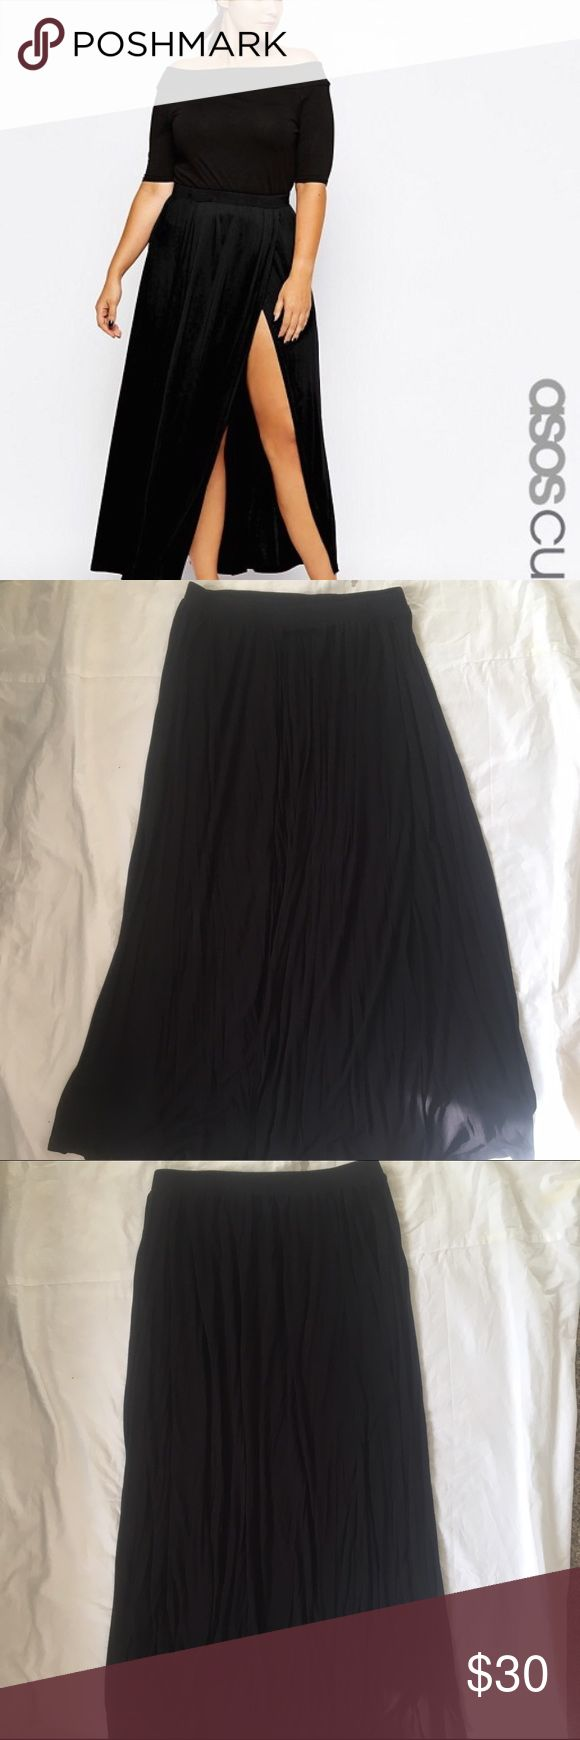 ASOS Curve Maxi Skirt With Split Black maxi skirt with a split down the side. Great condition, only worn a few times. ASOS Curve Skirts Maxi